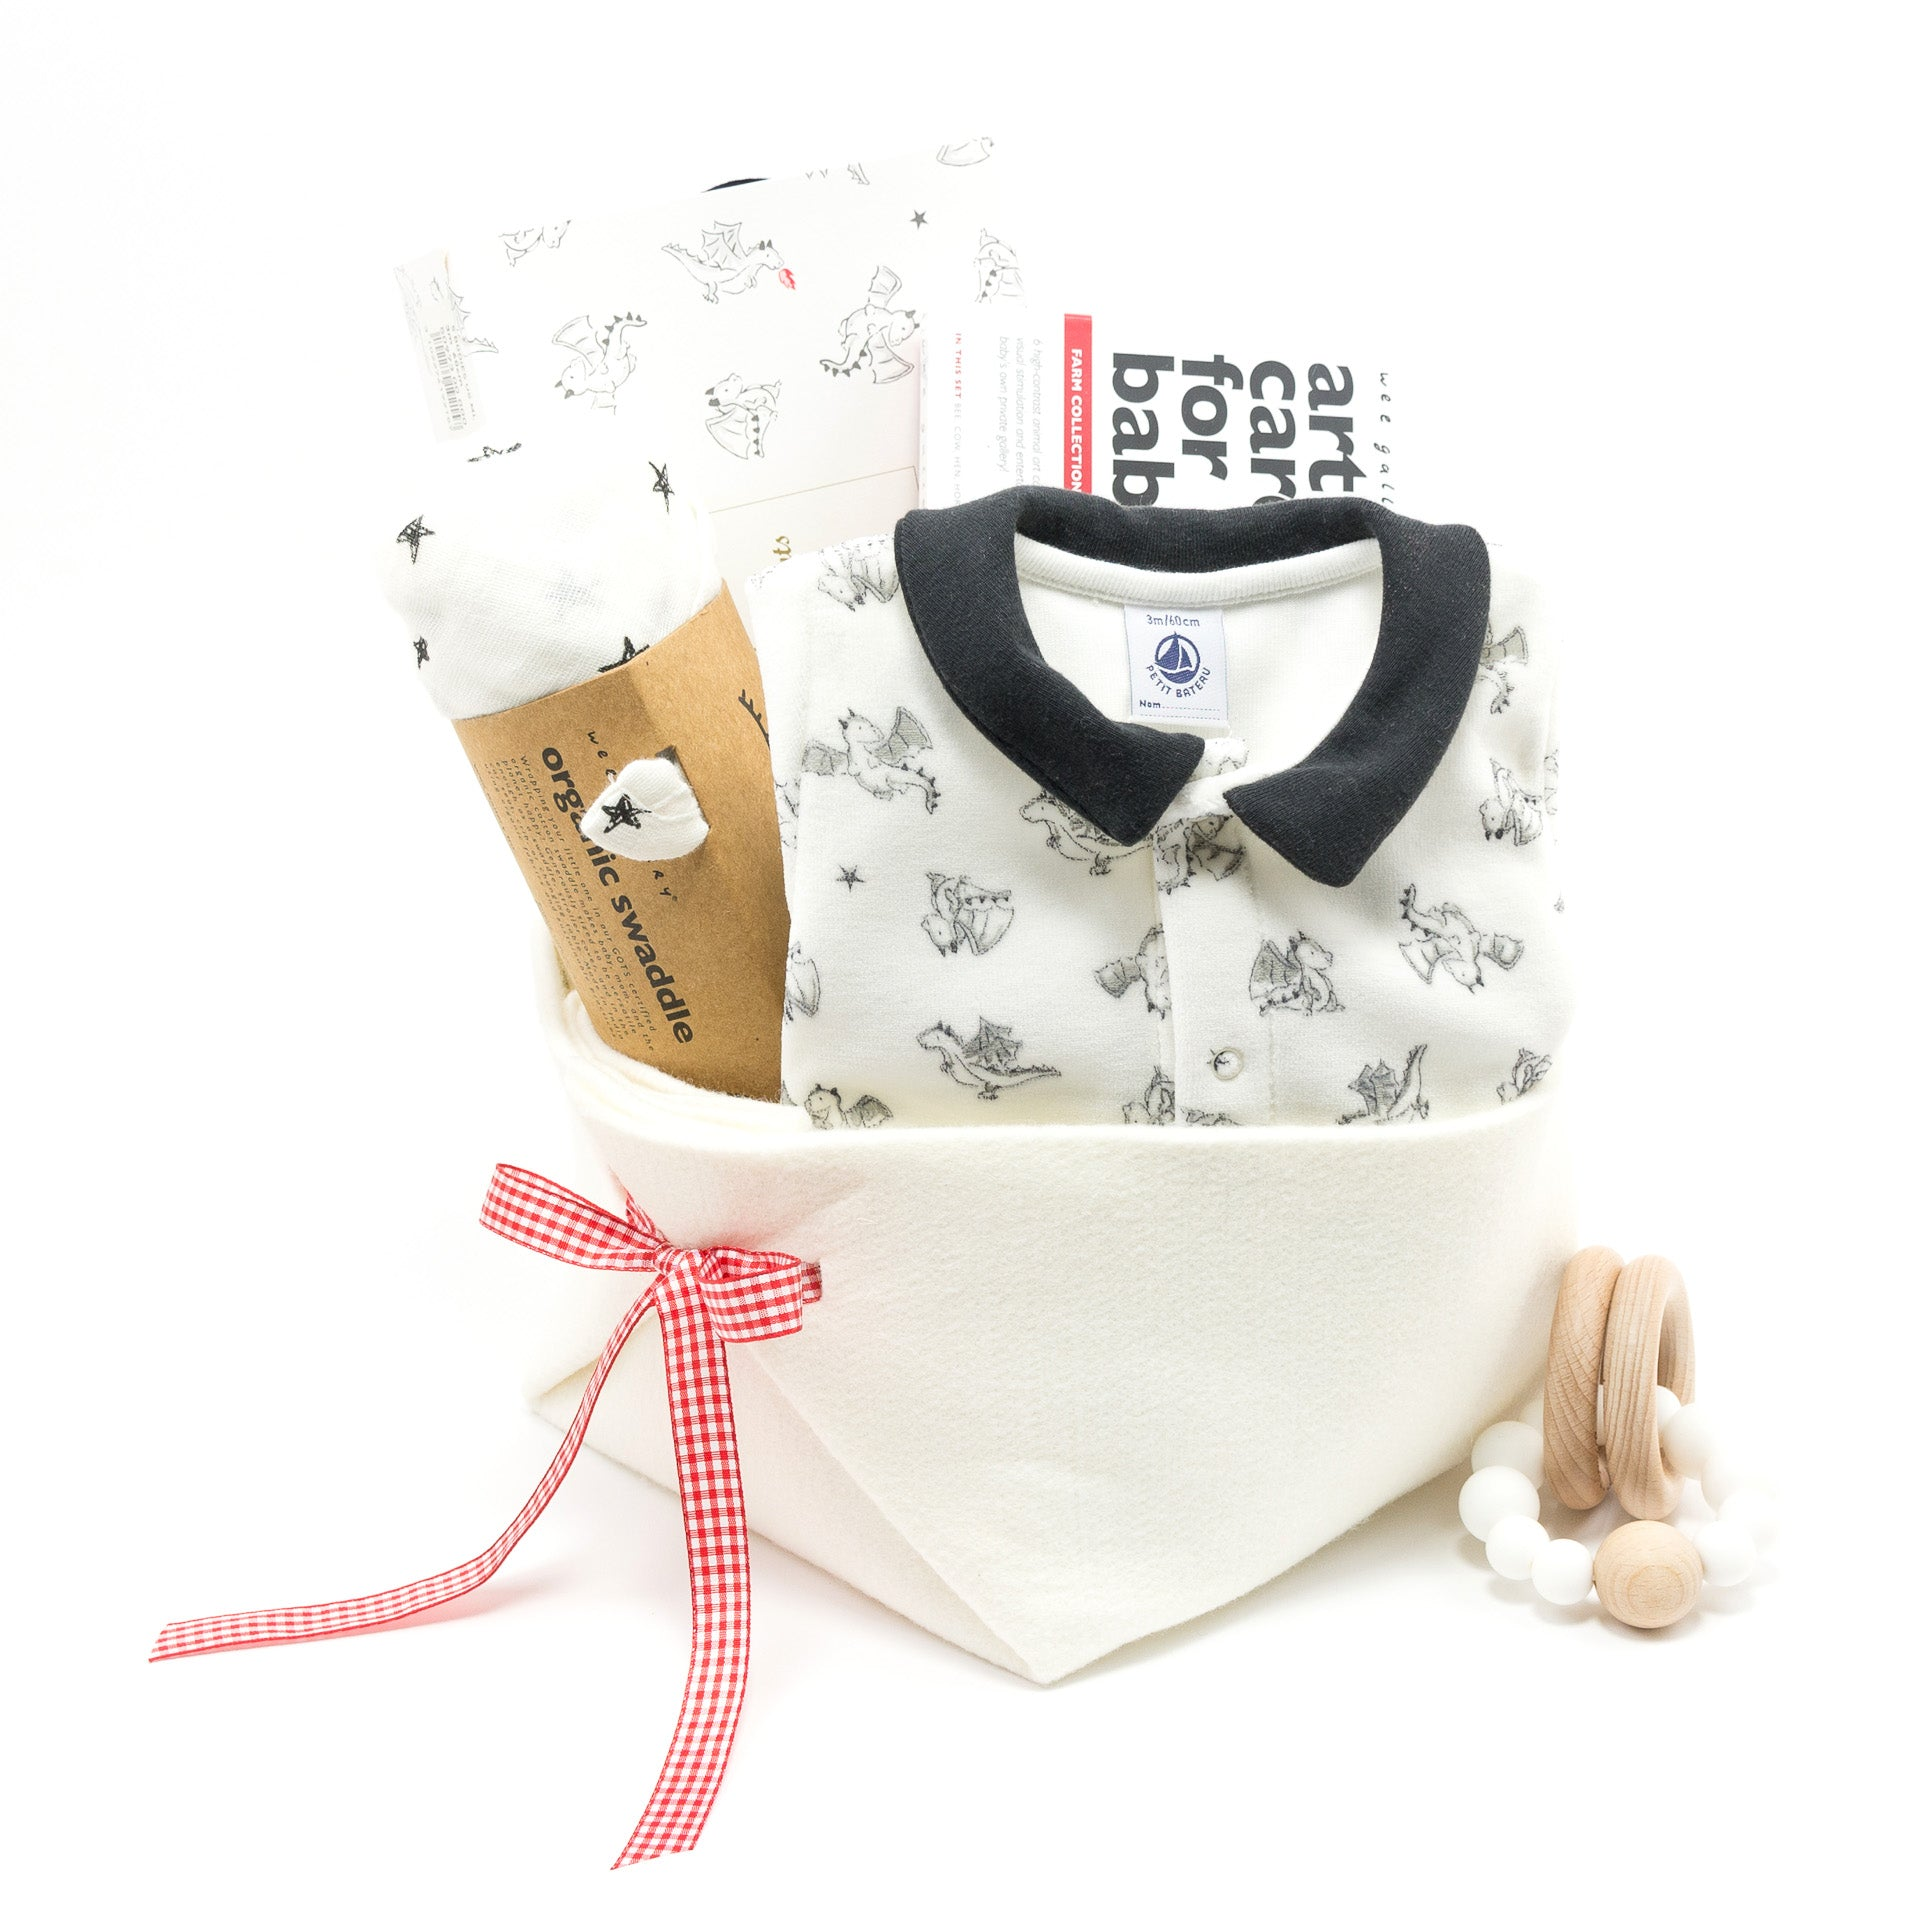 Luxury Baby Gift Basket at Bonjour Baby Baskets, perfect Corporate Baby Gifts